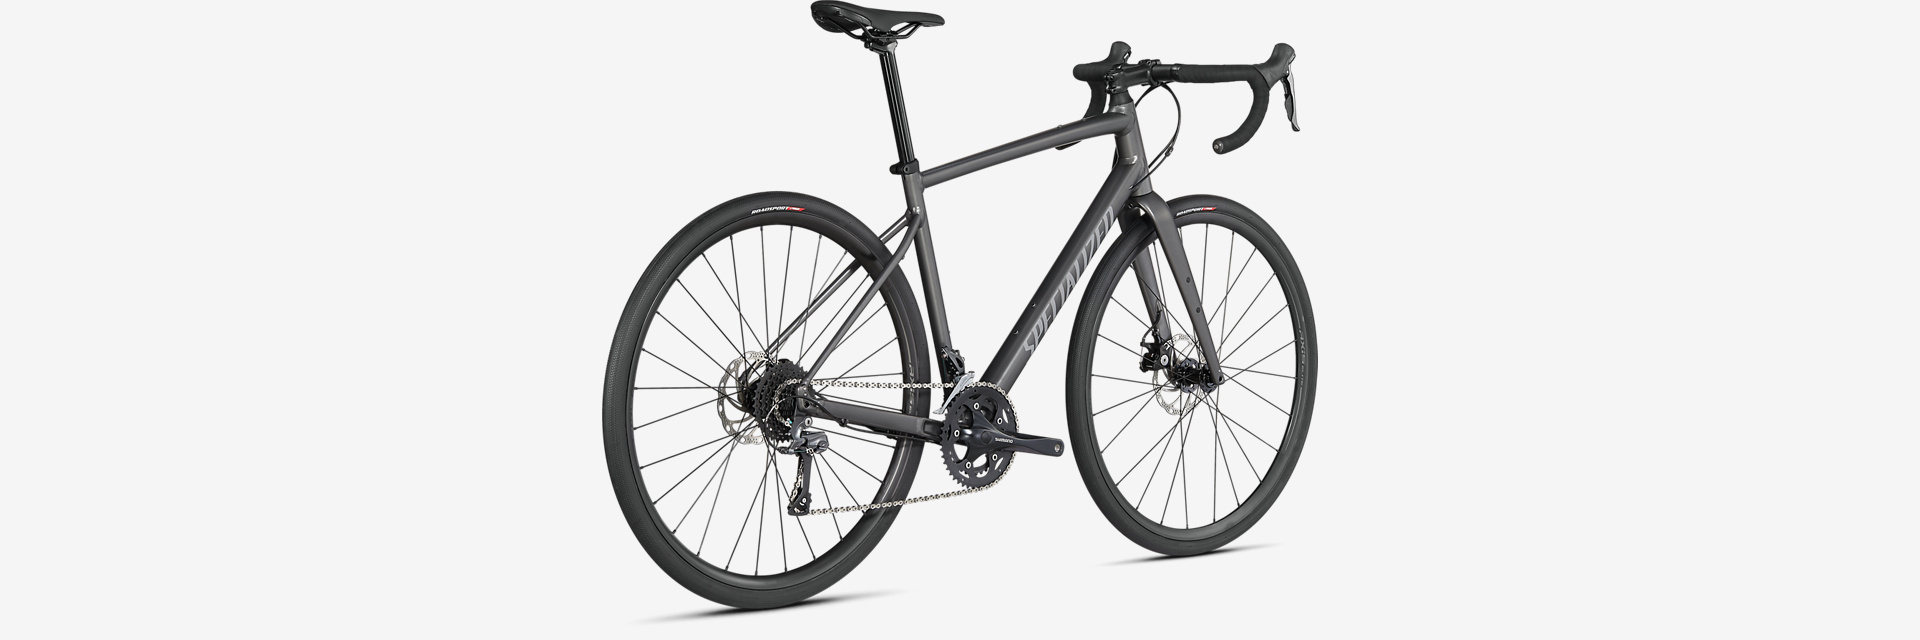 Specialized 20 DIVERGE E5 SMK/CLGRY/CHRM 49